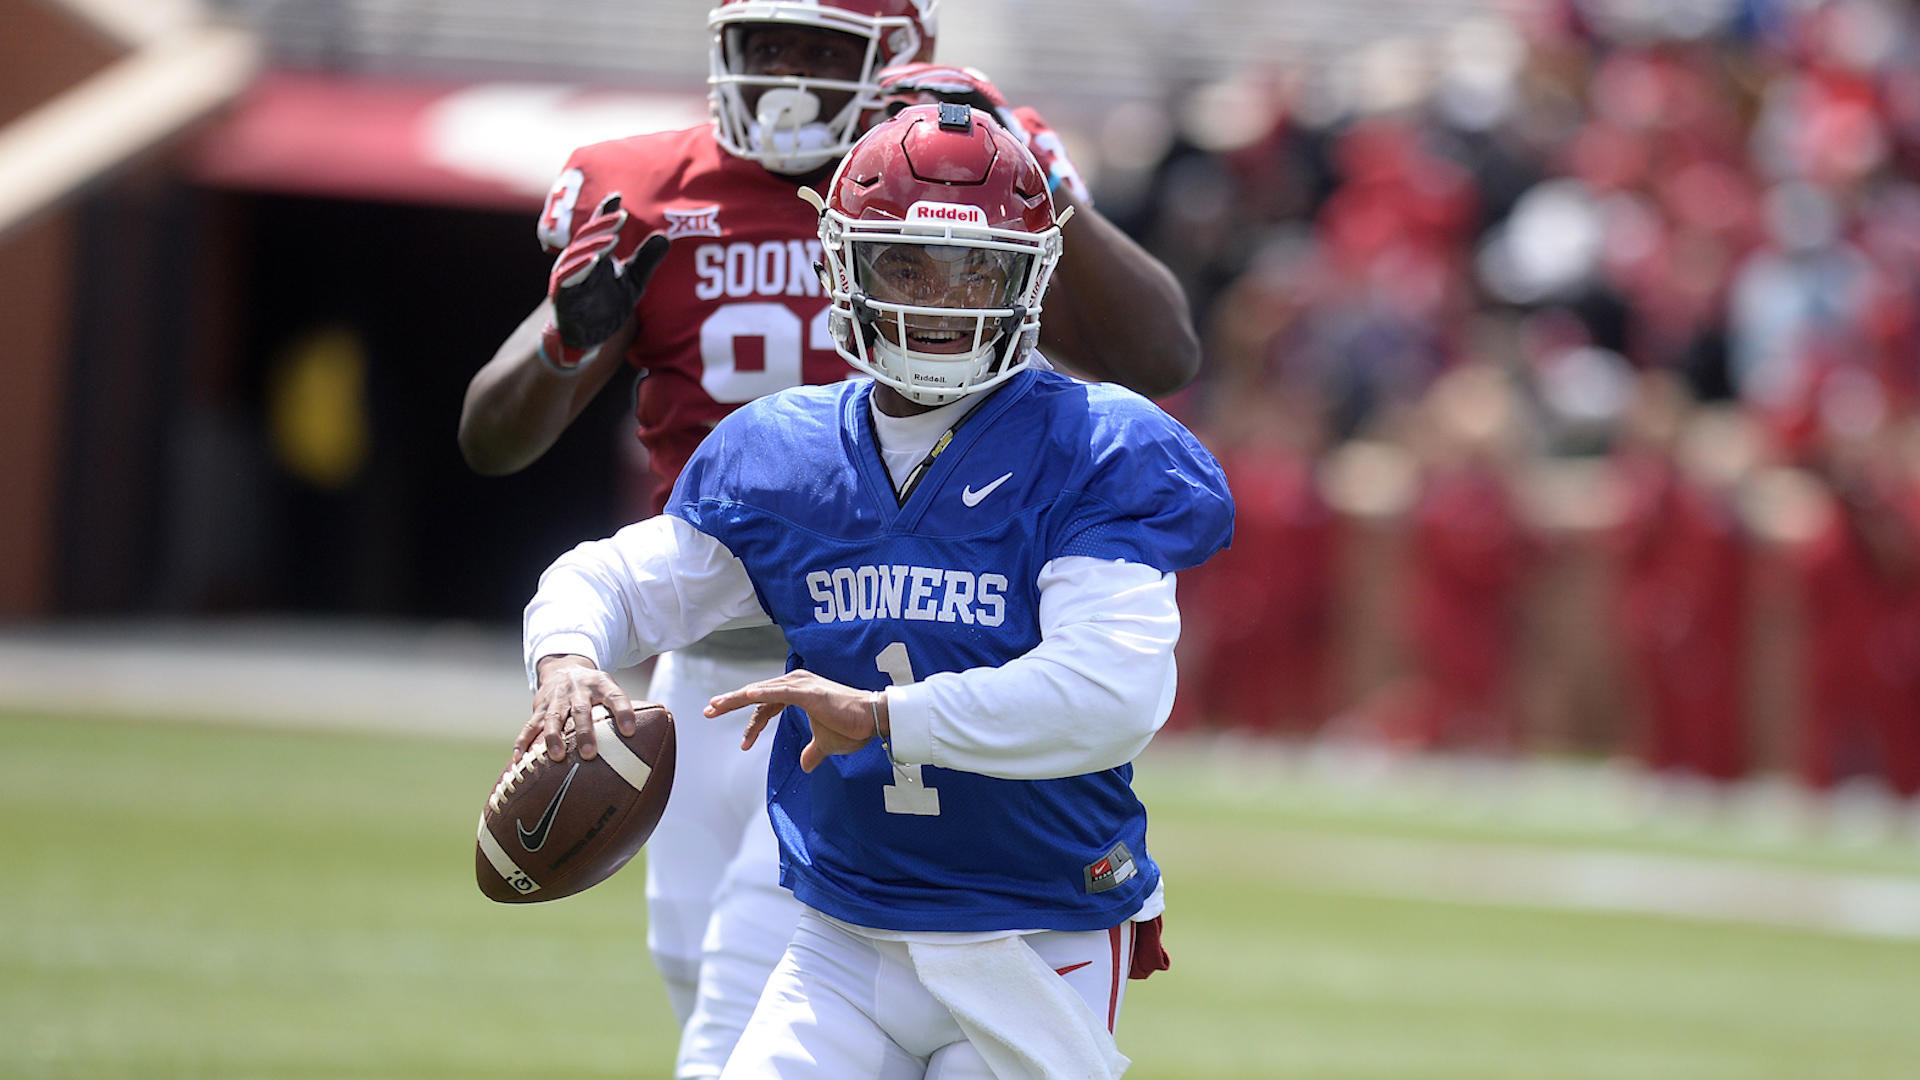 Why Kyler Murray is picking baseball over football, and what to expect from the Heisman winner on the diamond